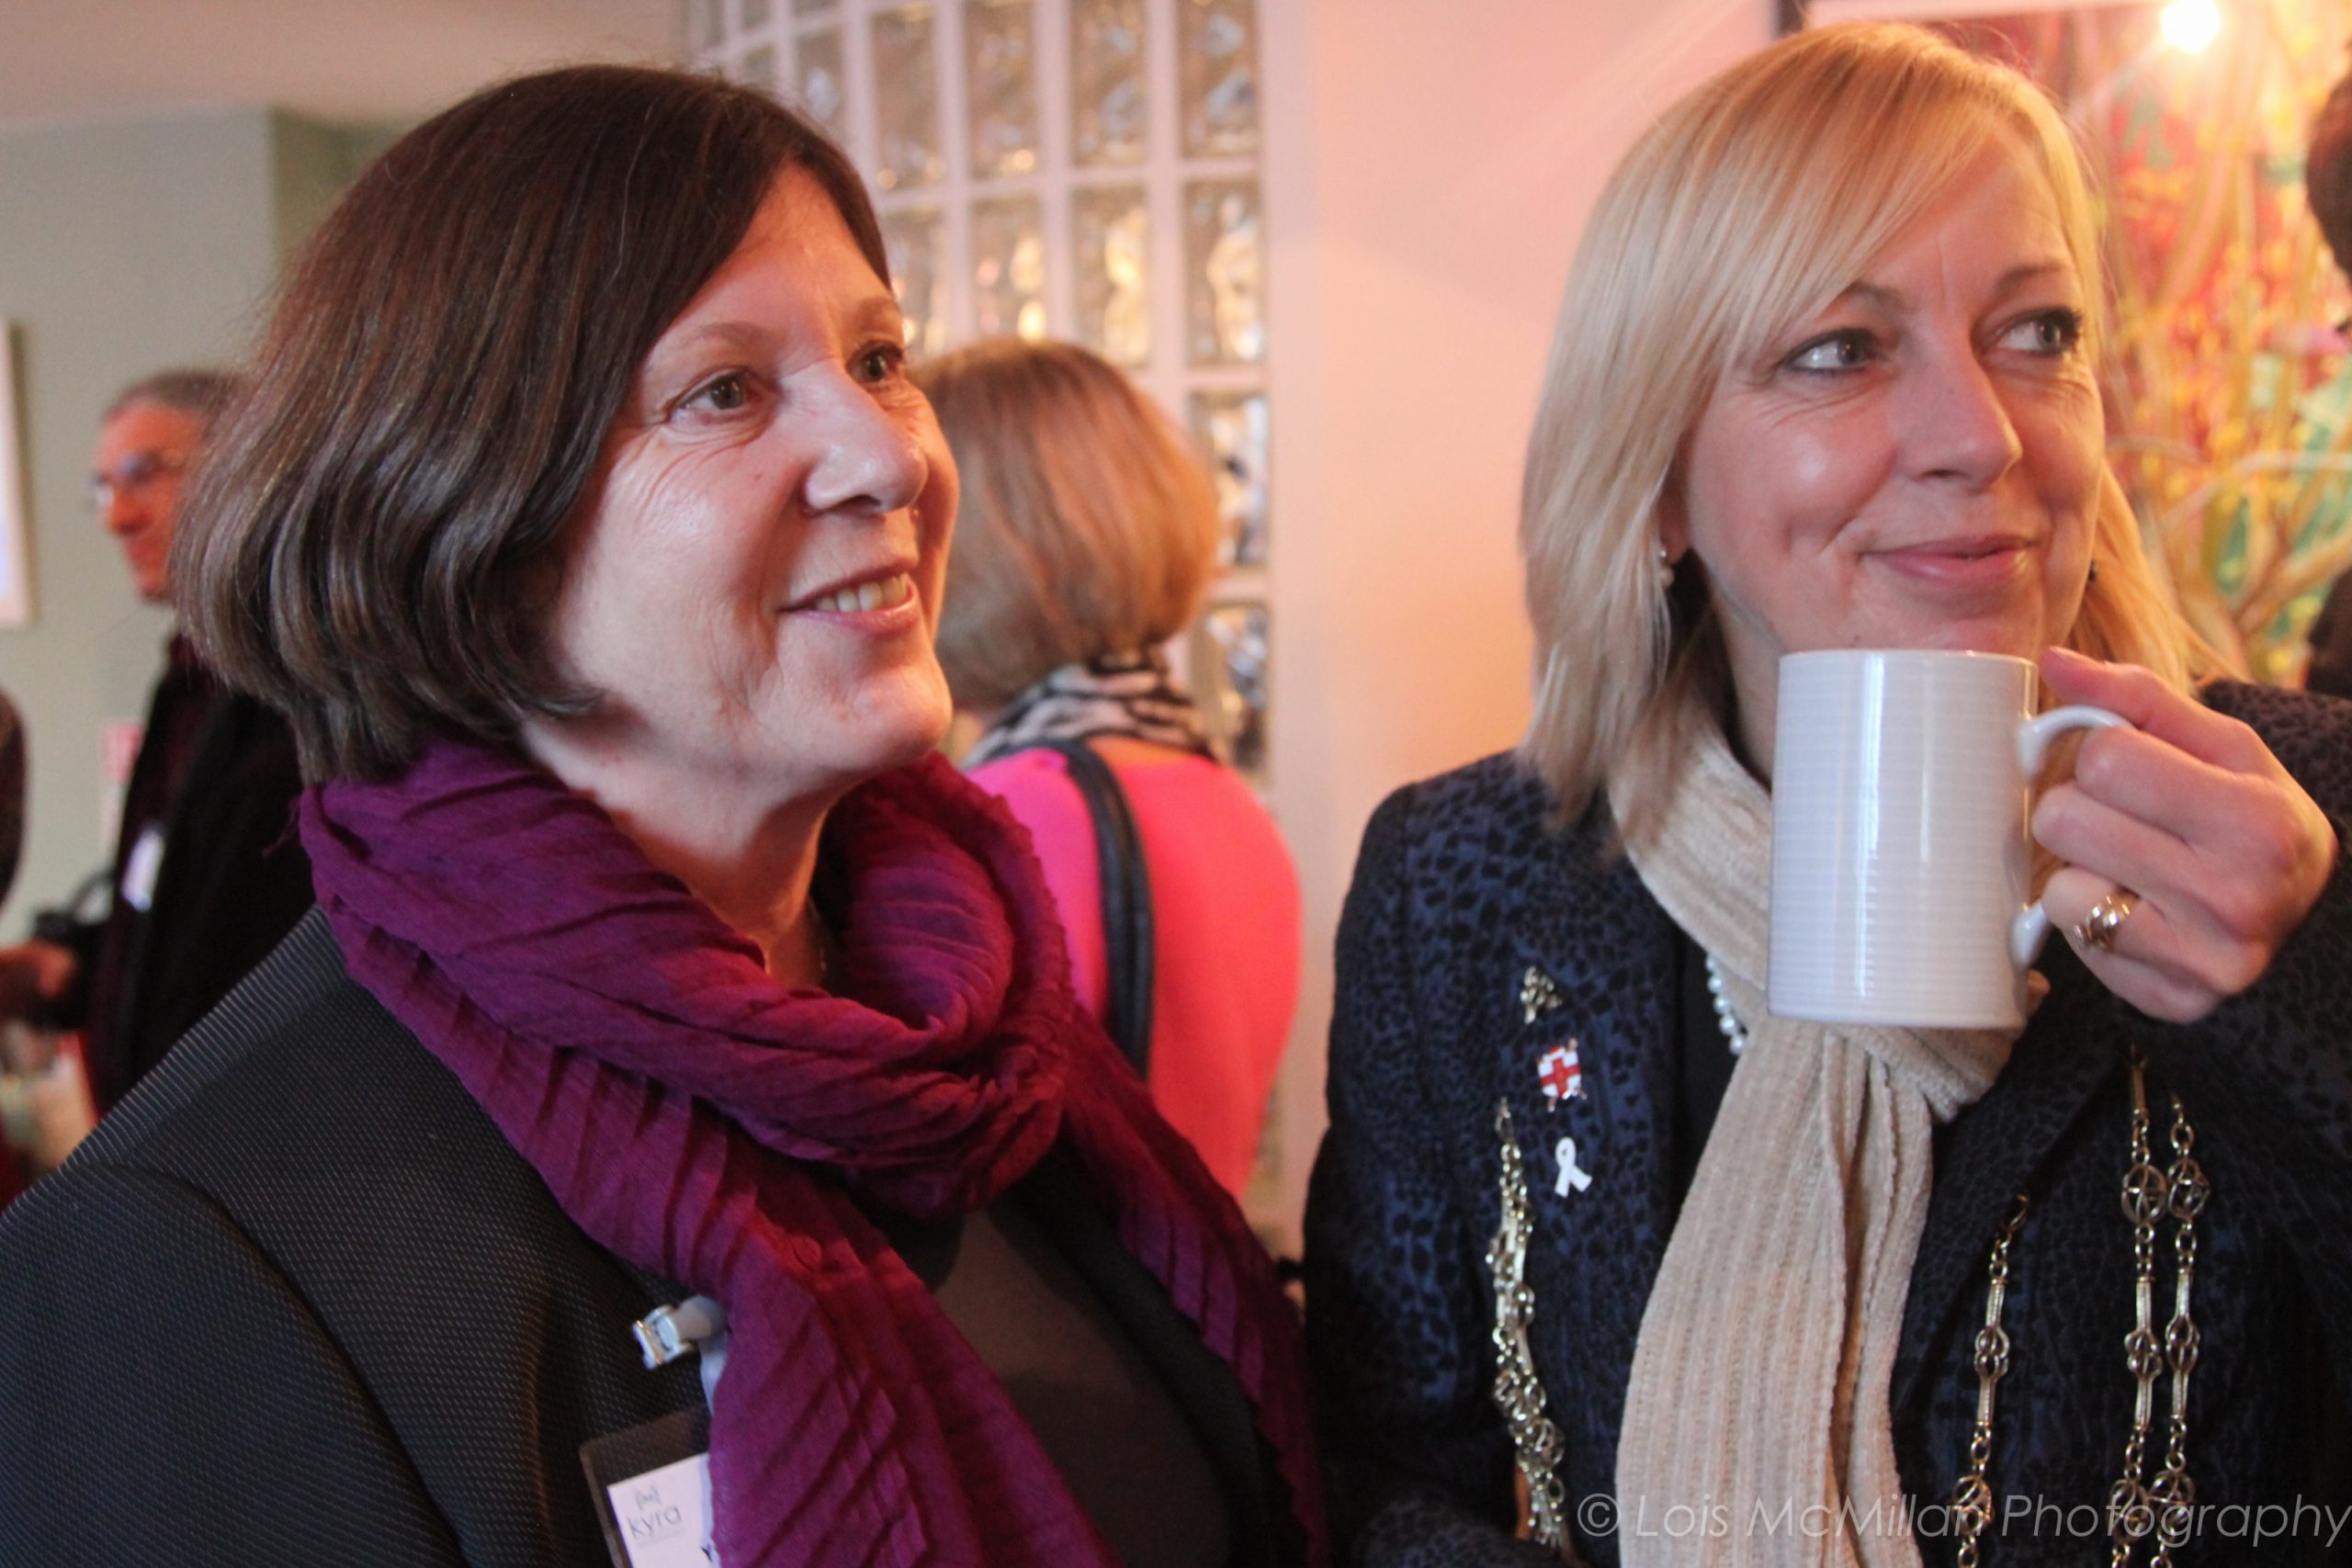 Yvonne (left) pictured with former Lord Mayor of York, Julie Gunnell. (c) Lois McMillan Photography / Kyra